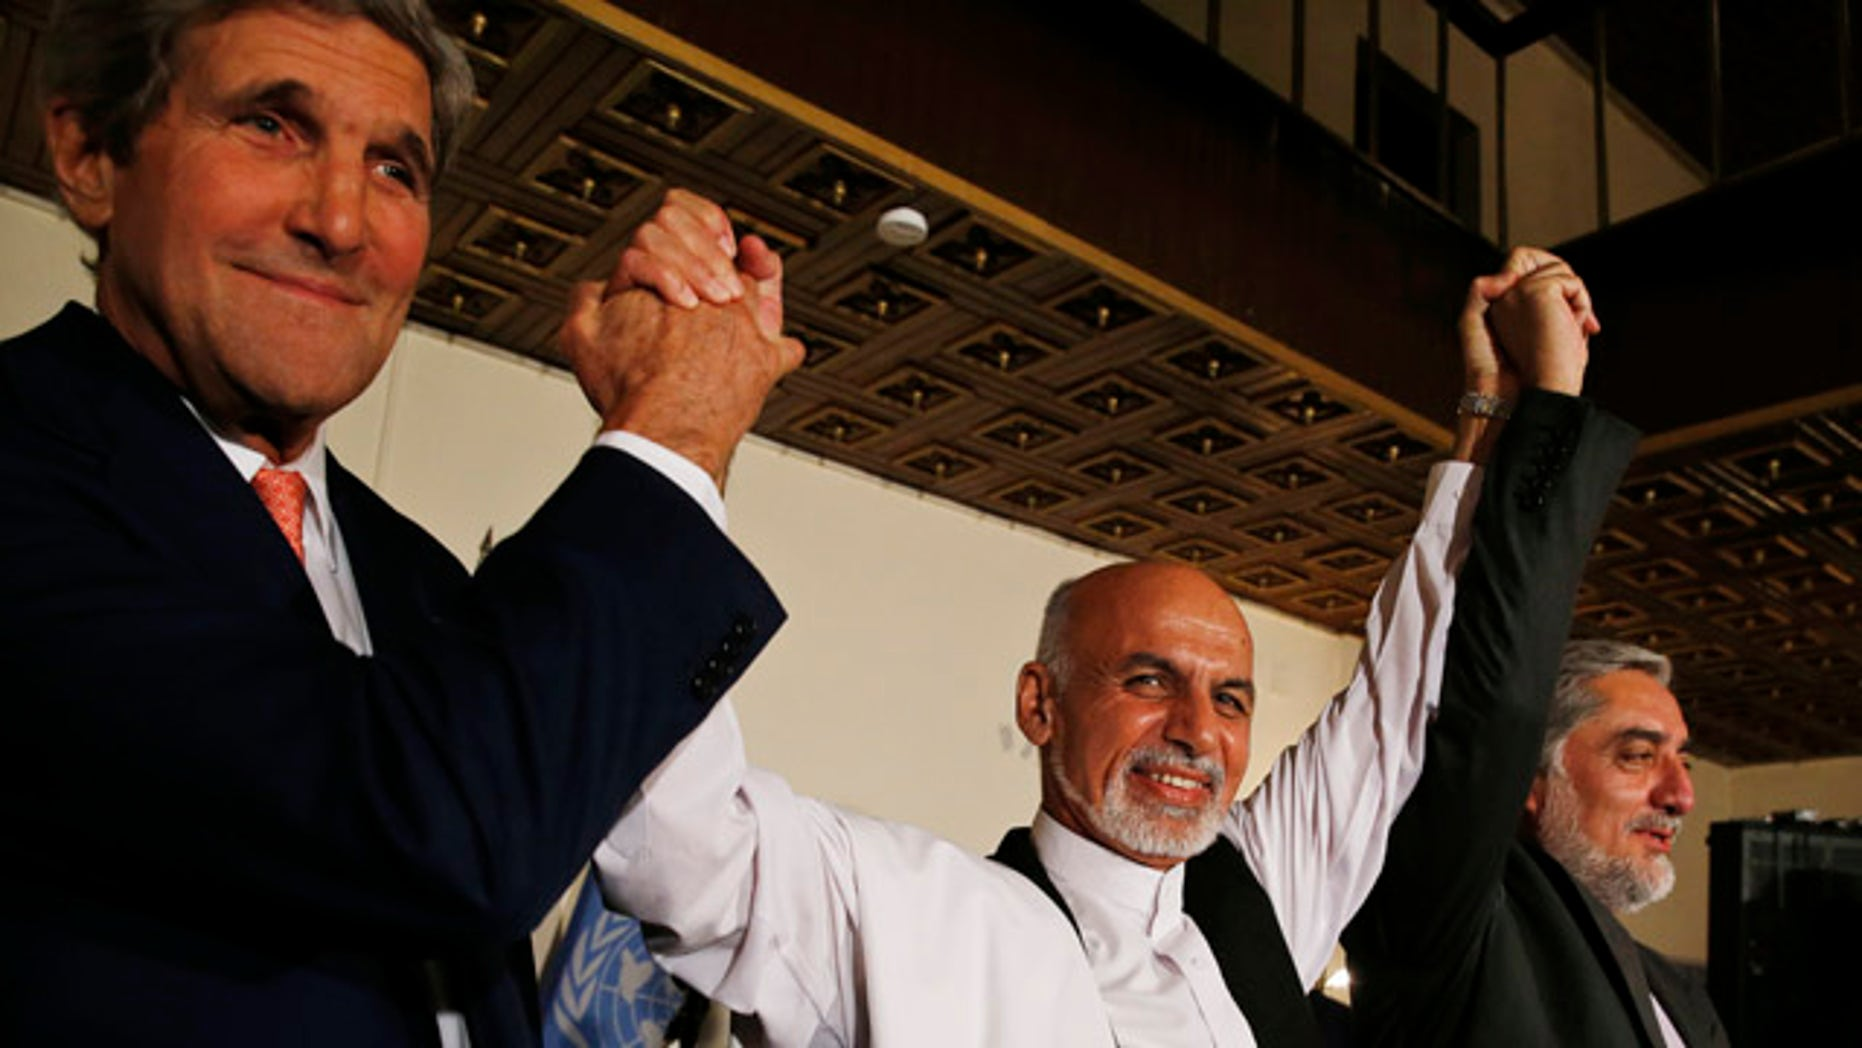 Afghanistan election commission names Ahmadzai winner hours